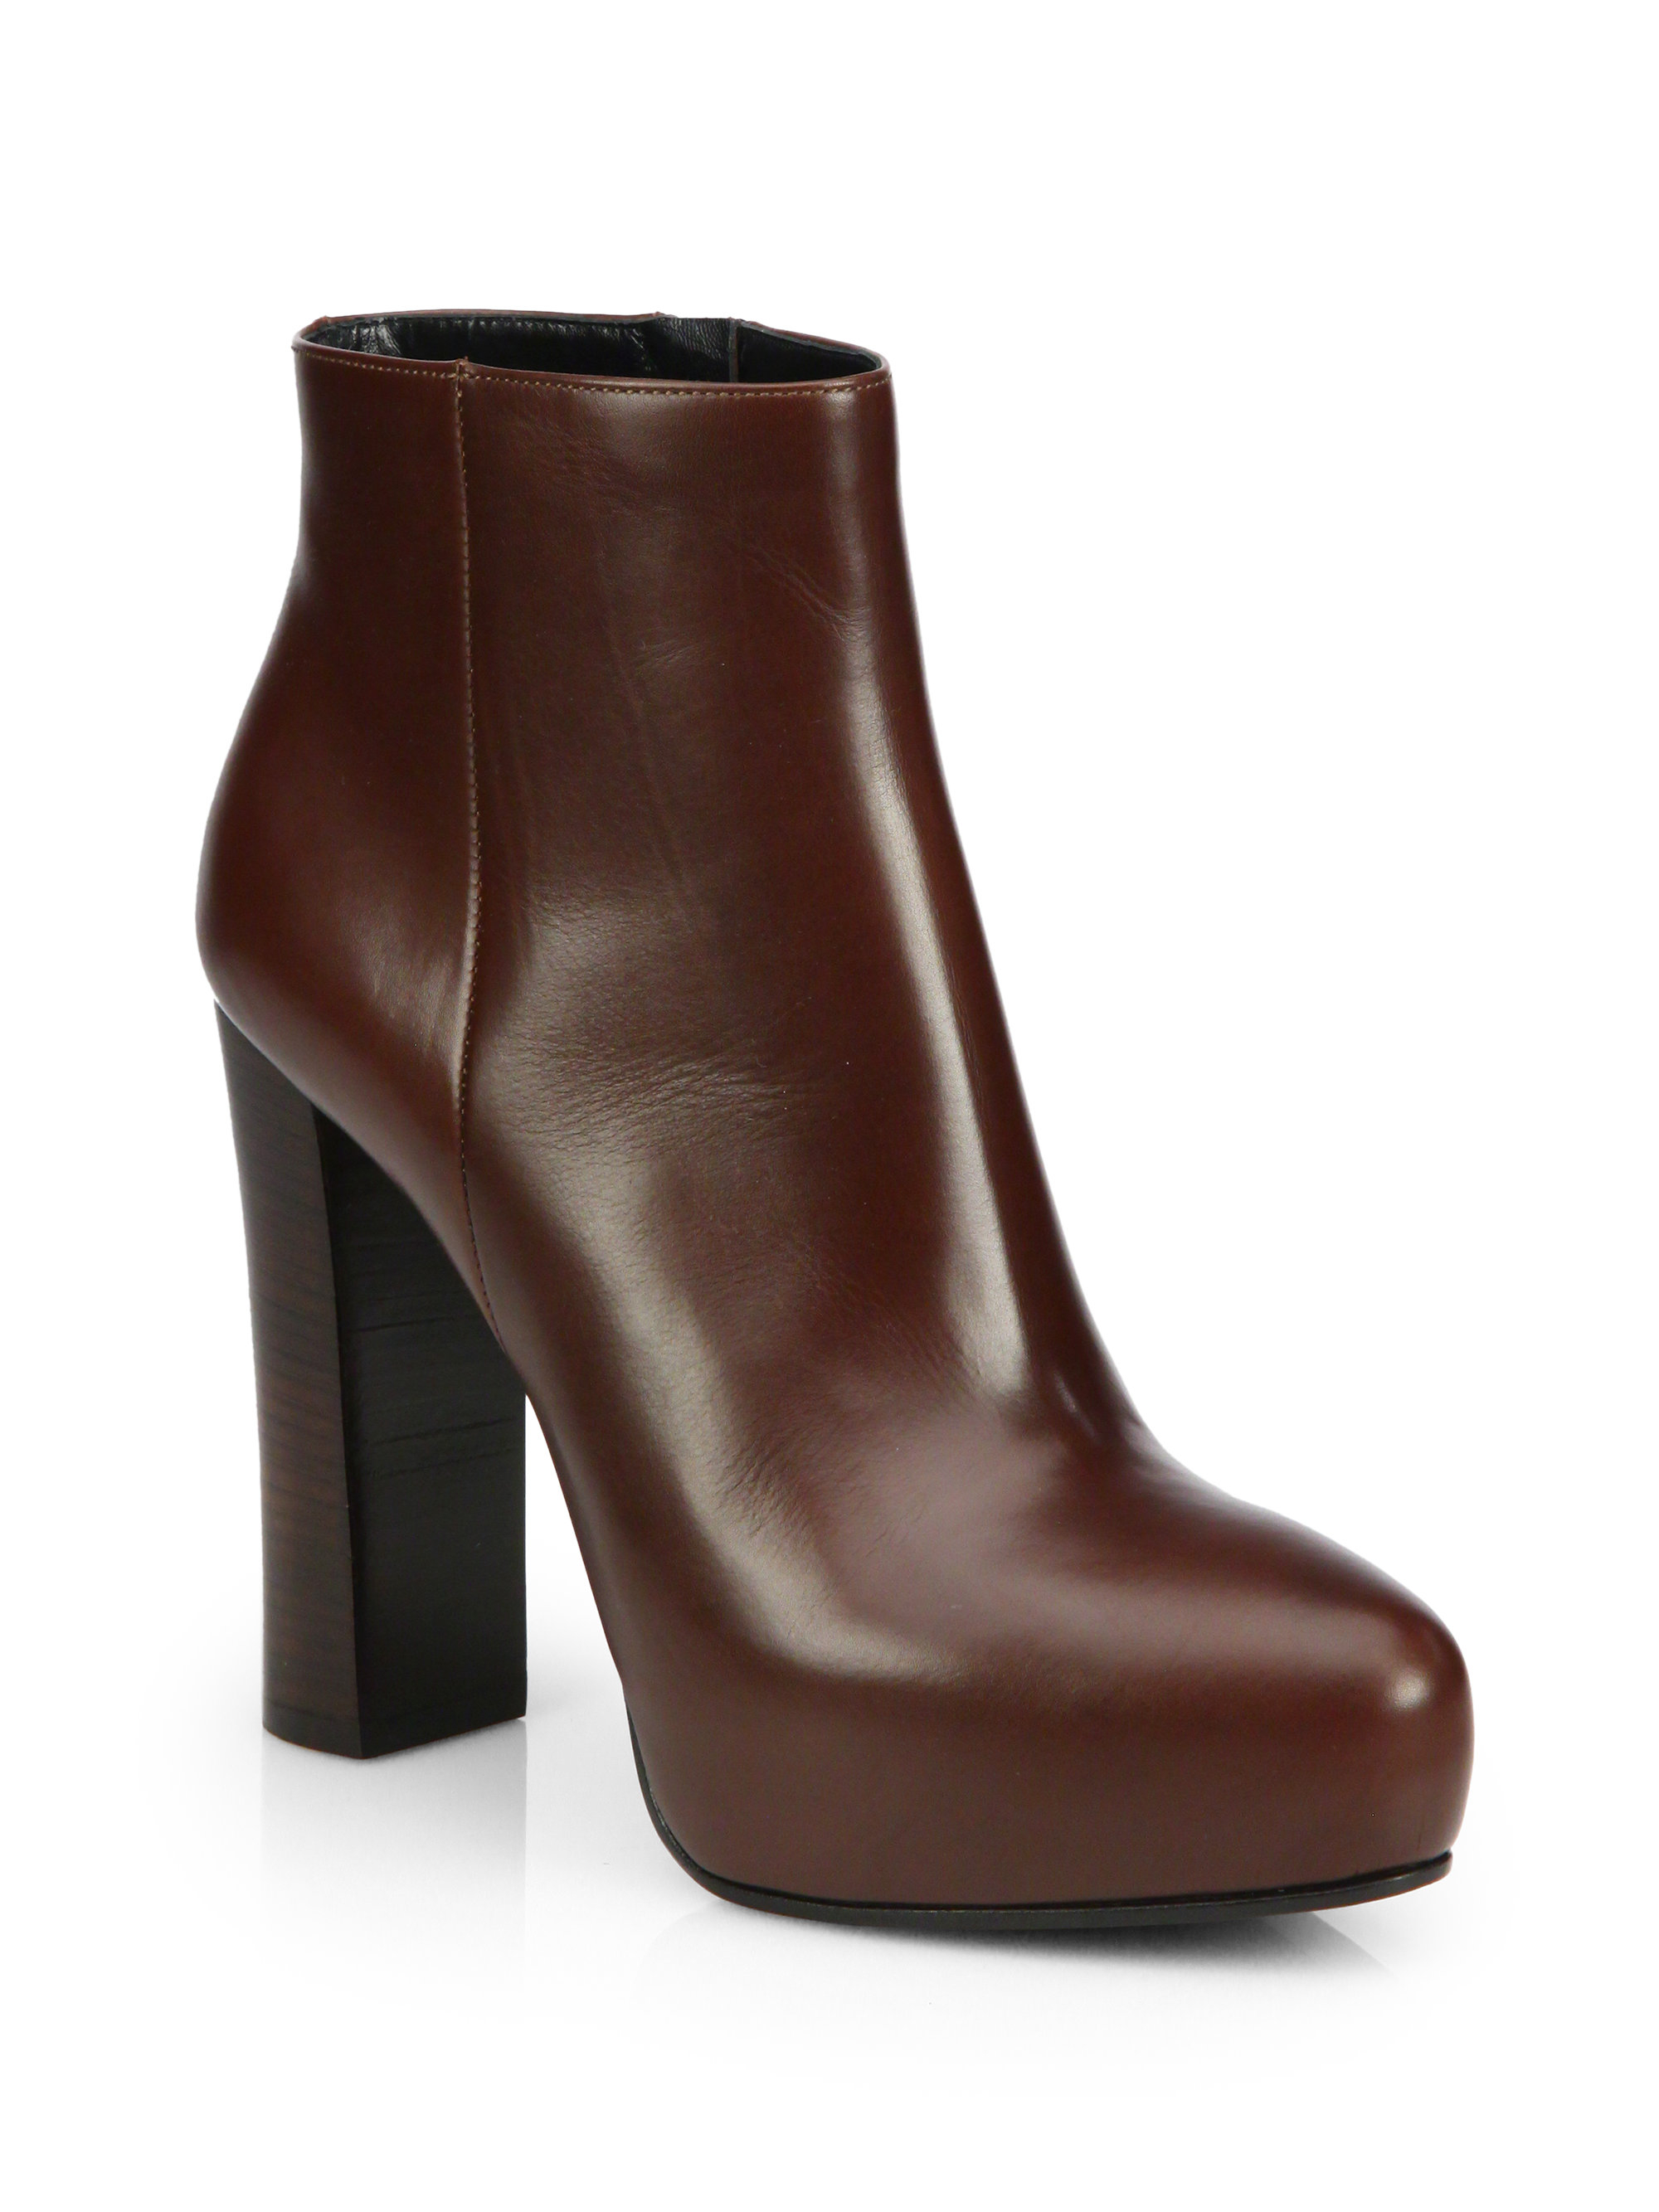 brown ankle boots gallery XECELKQ